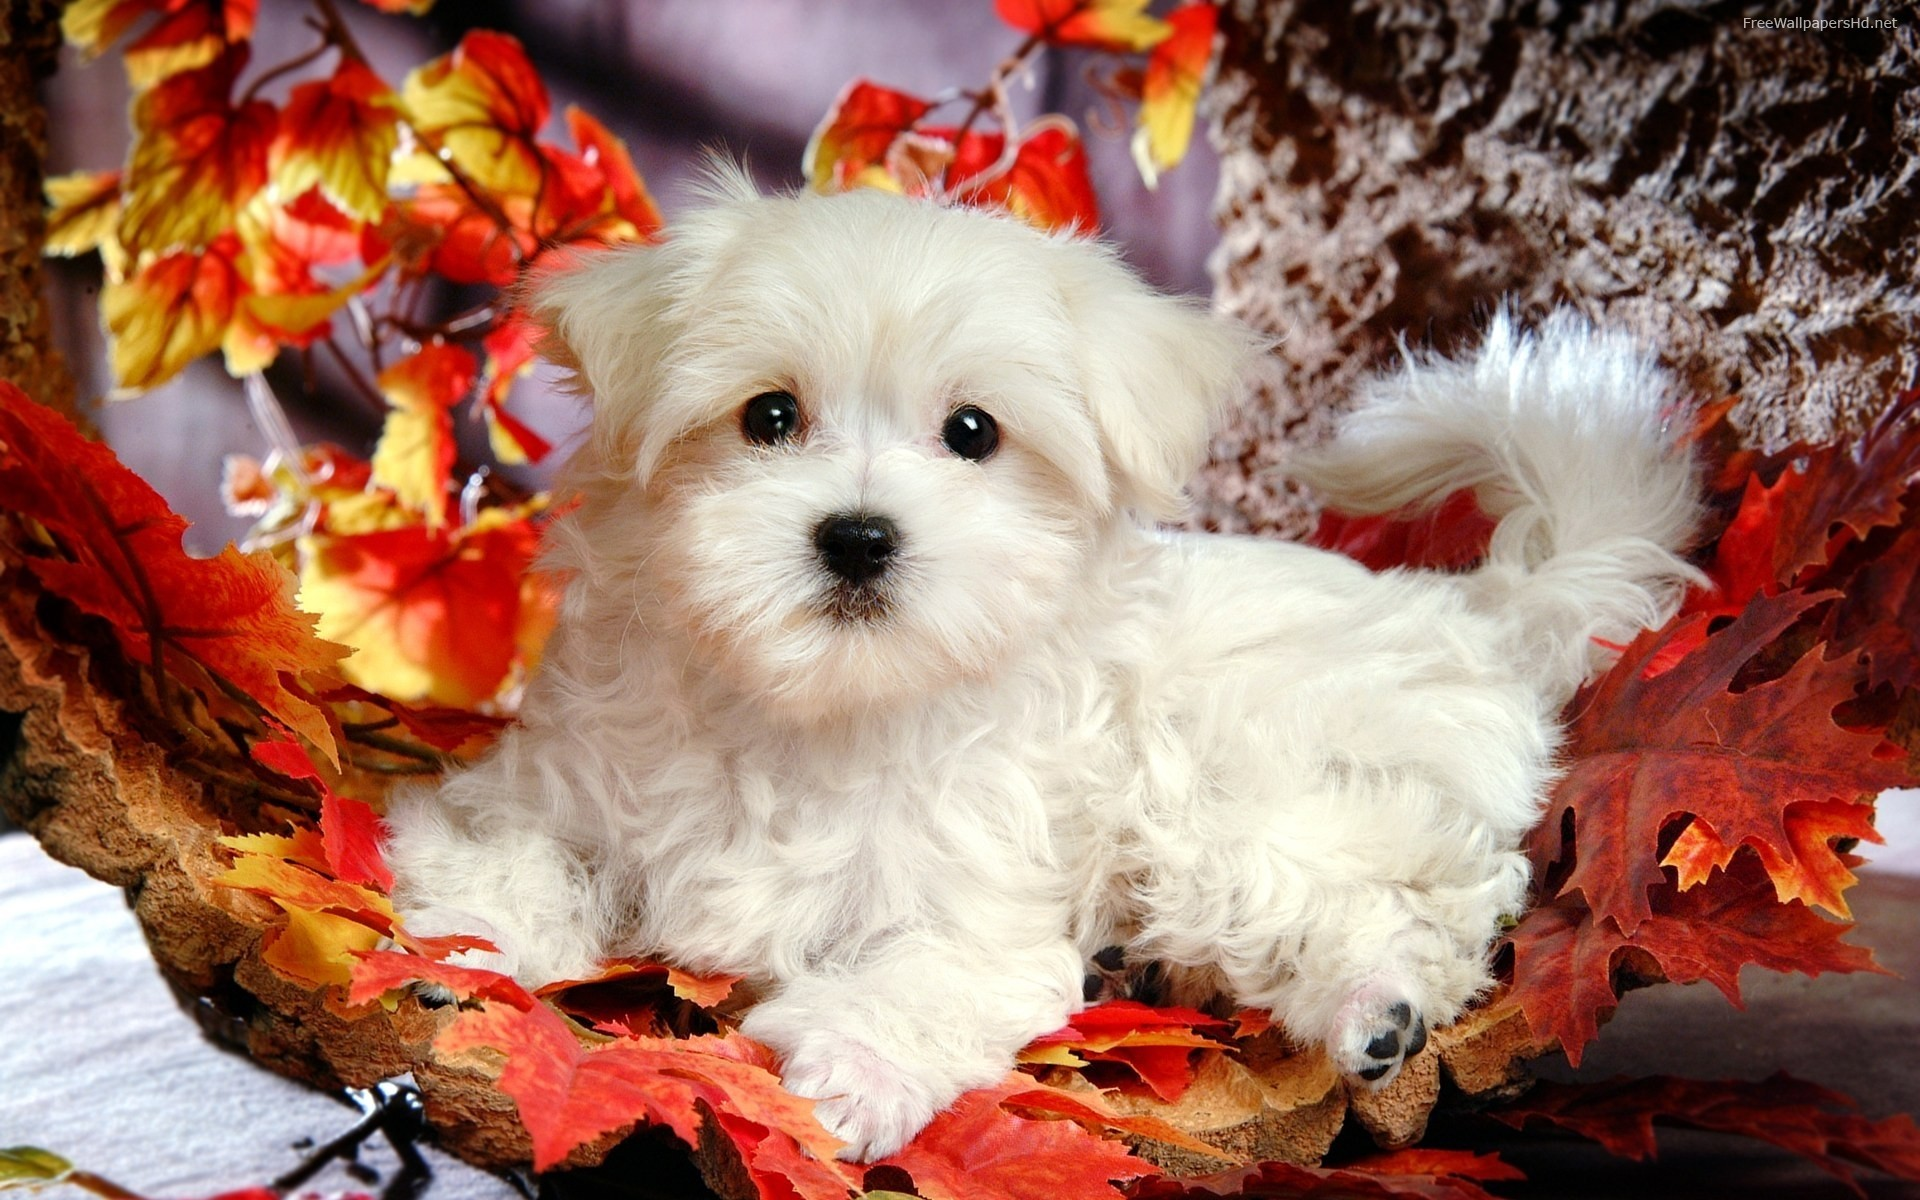 1920x1200 Cute Puppy Wallpaper: Cute White Puppy Hd Wallpaper px